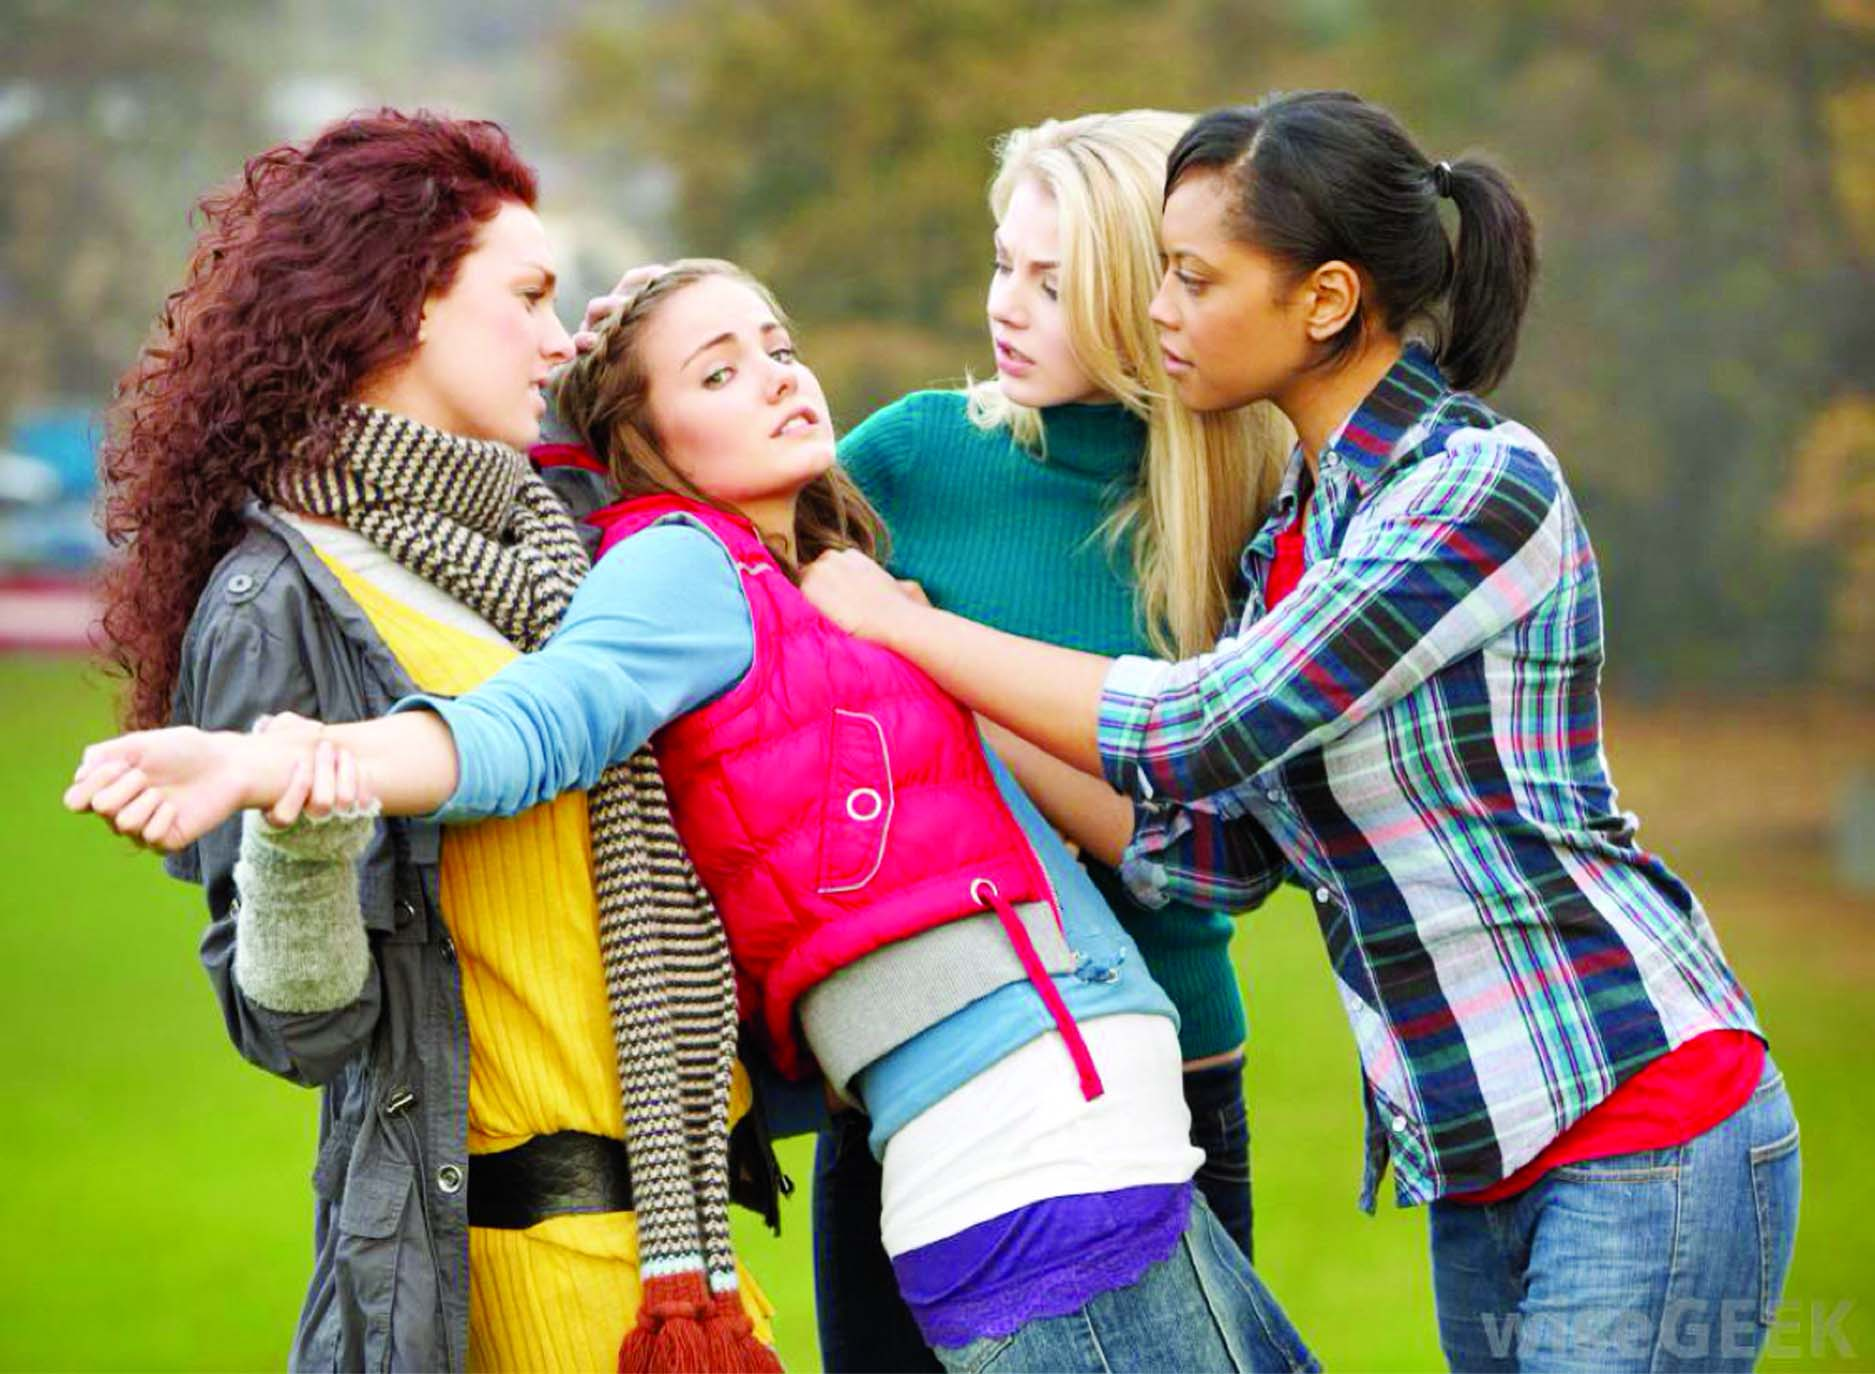 a study on teen bullying Bullying in school is a very serious problem that can contribute to teen violence bullying can be physical or verbal and can escalate into violence, and in some cases, the victim may resort to violence in response to the extreme nature of harassment.